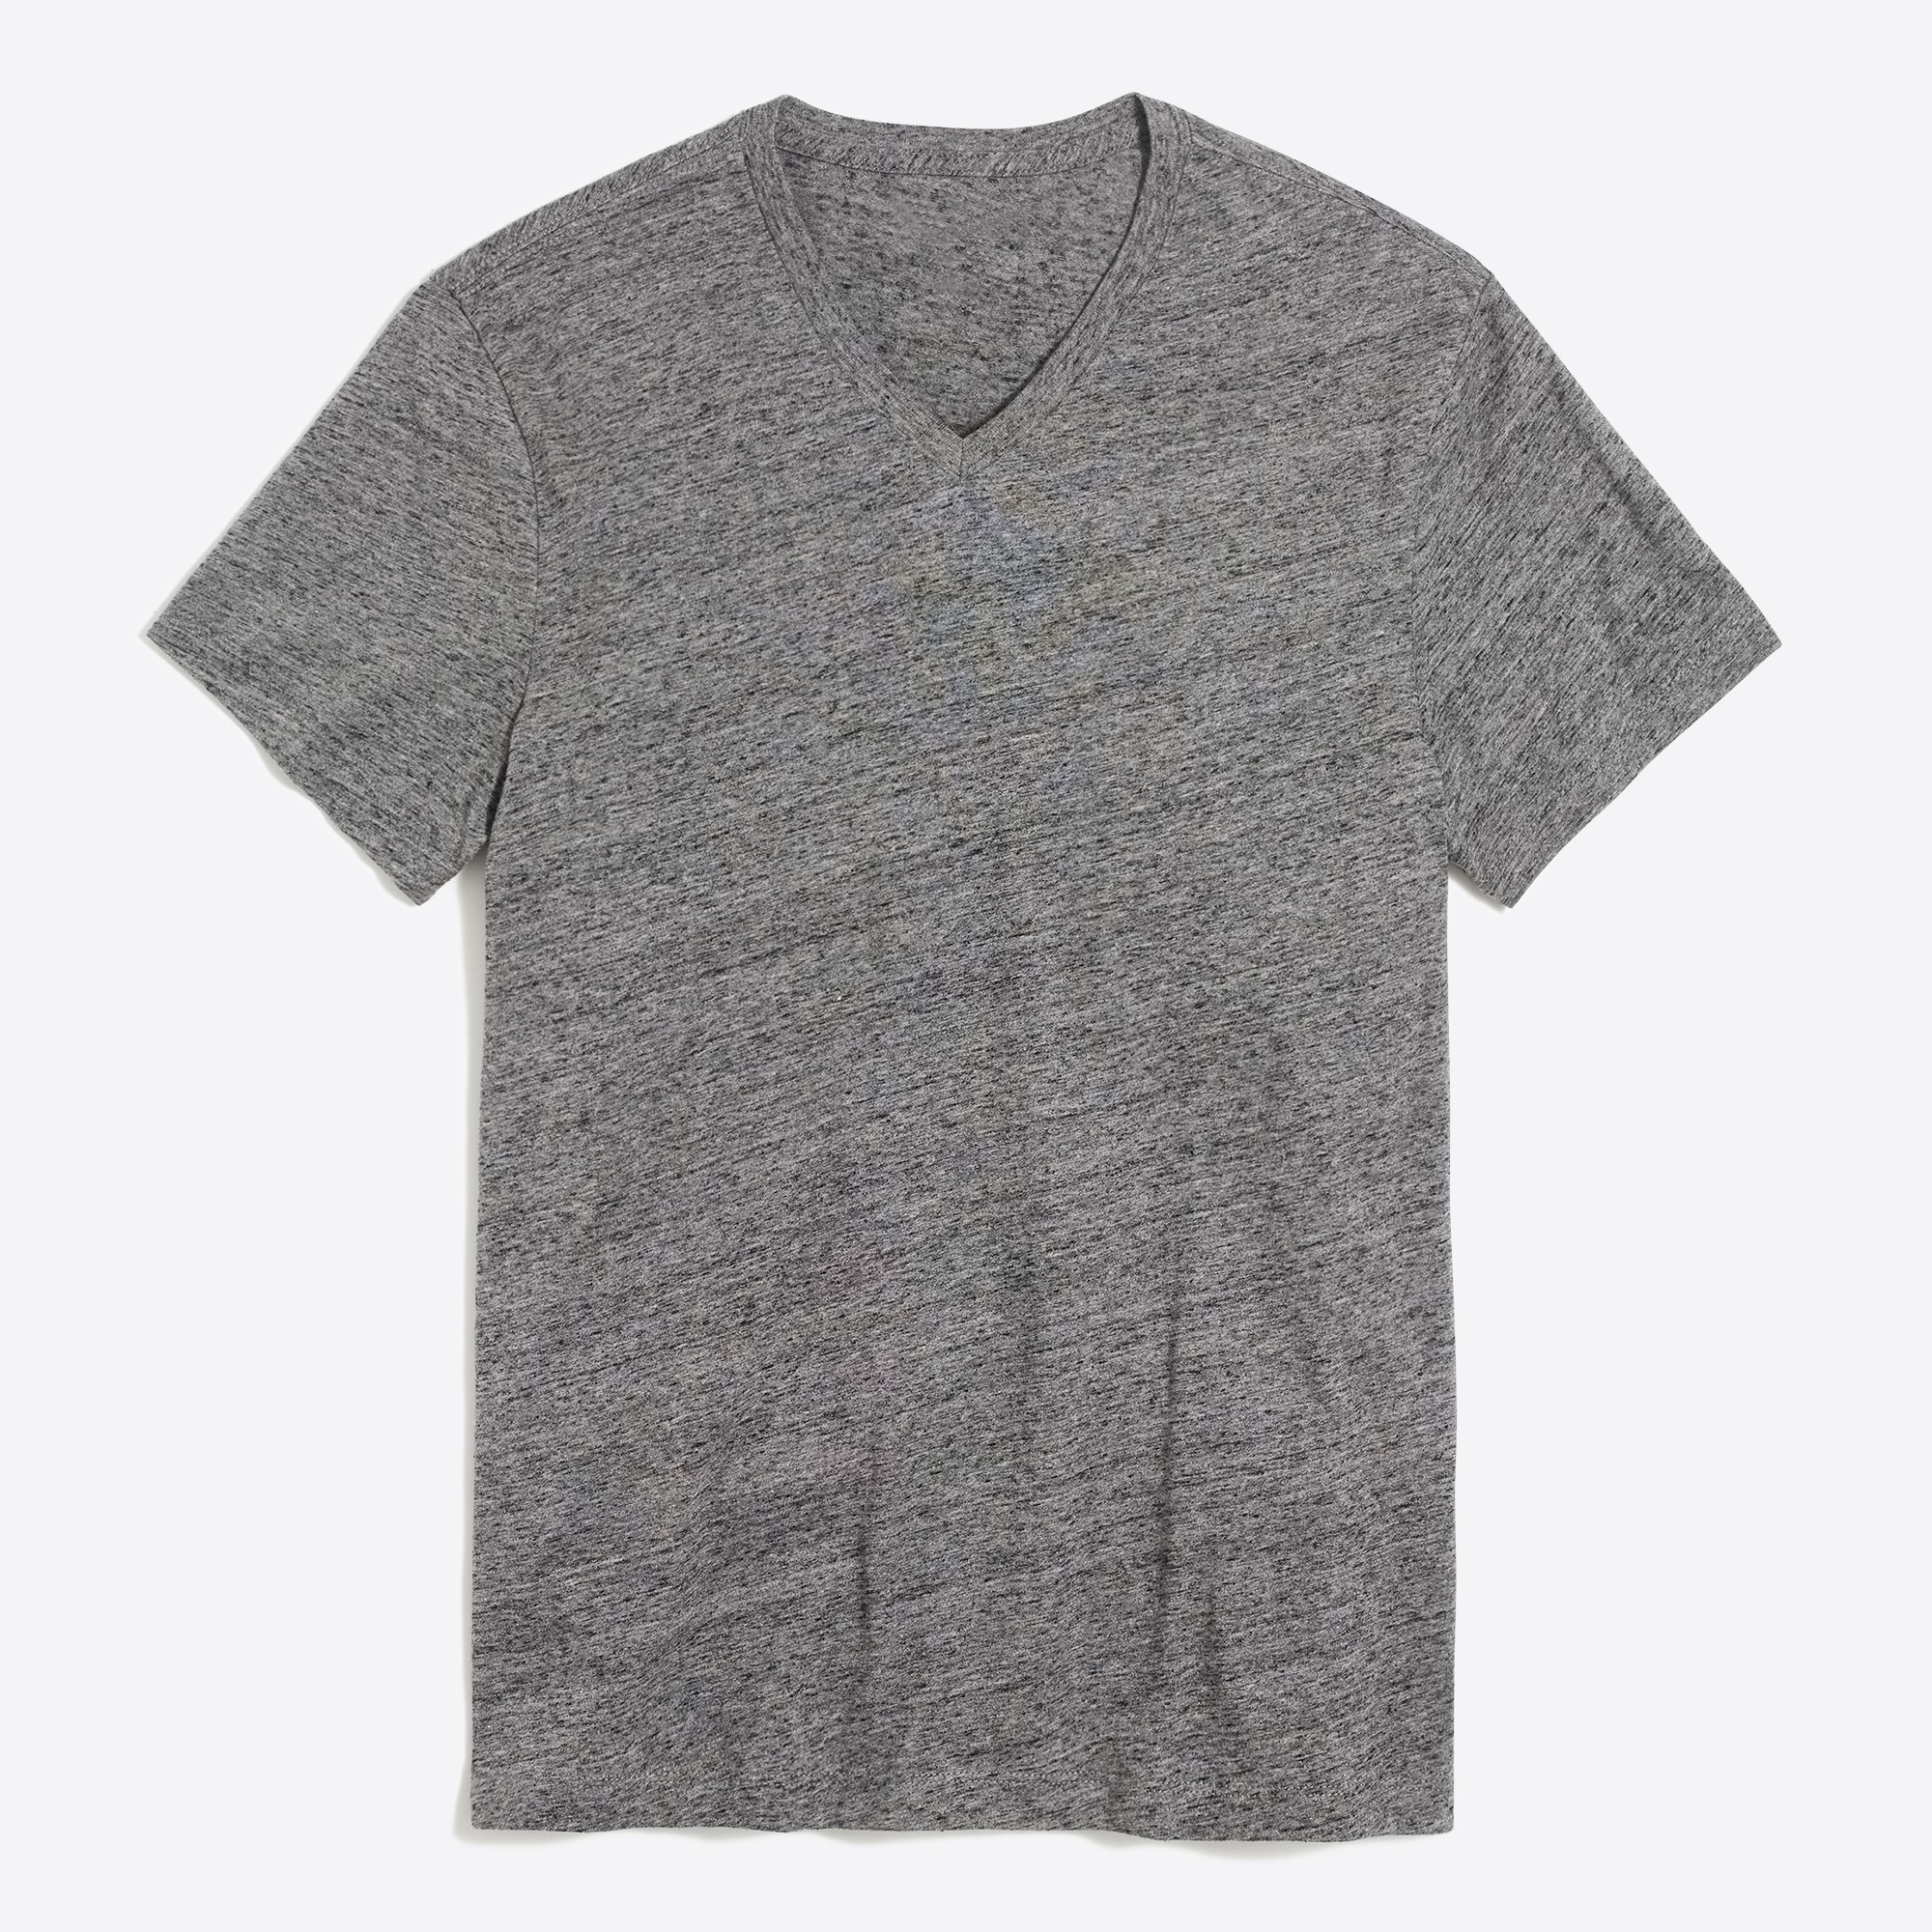 J.Crew Mercantile Broken-in V-neck T-shirt factorymen online exclusives c